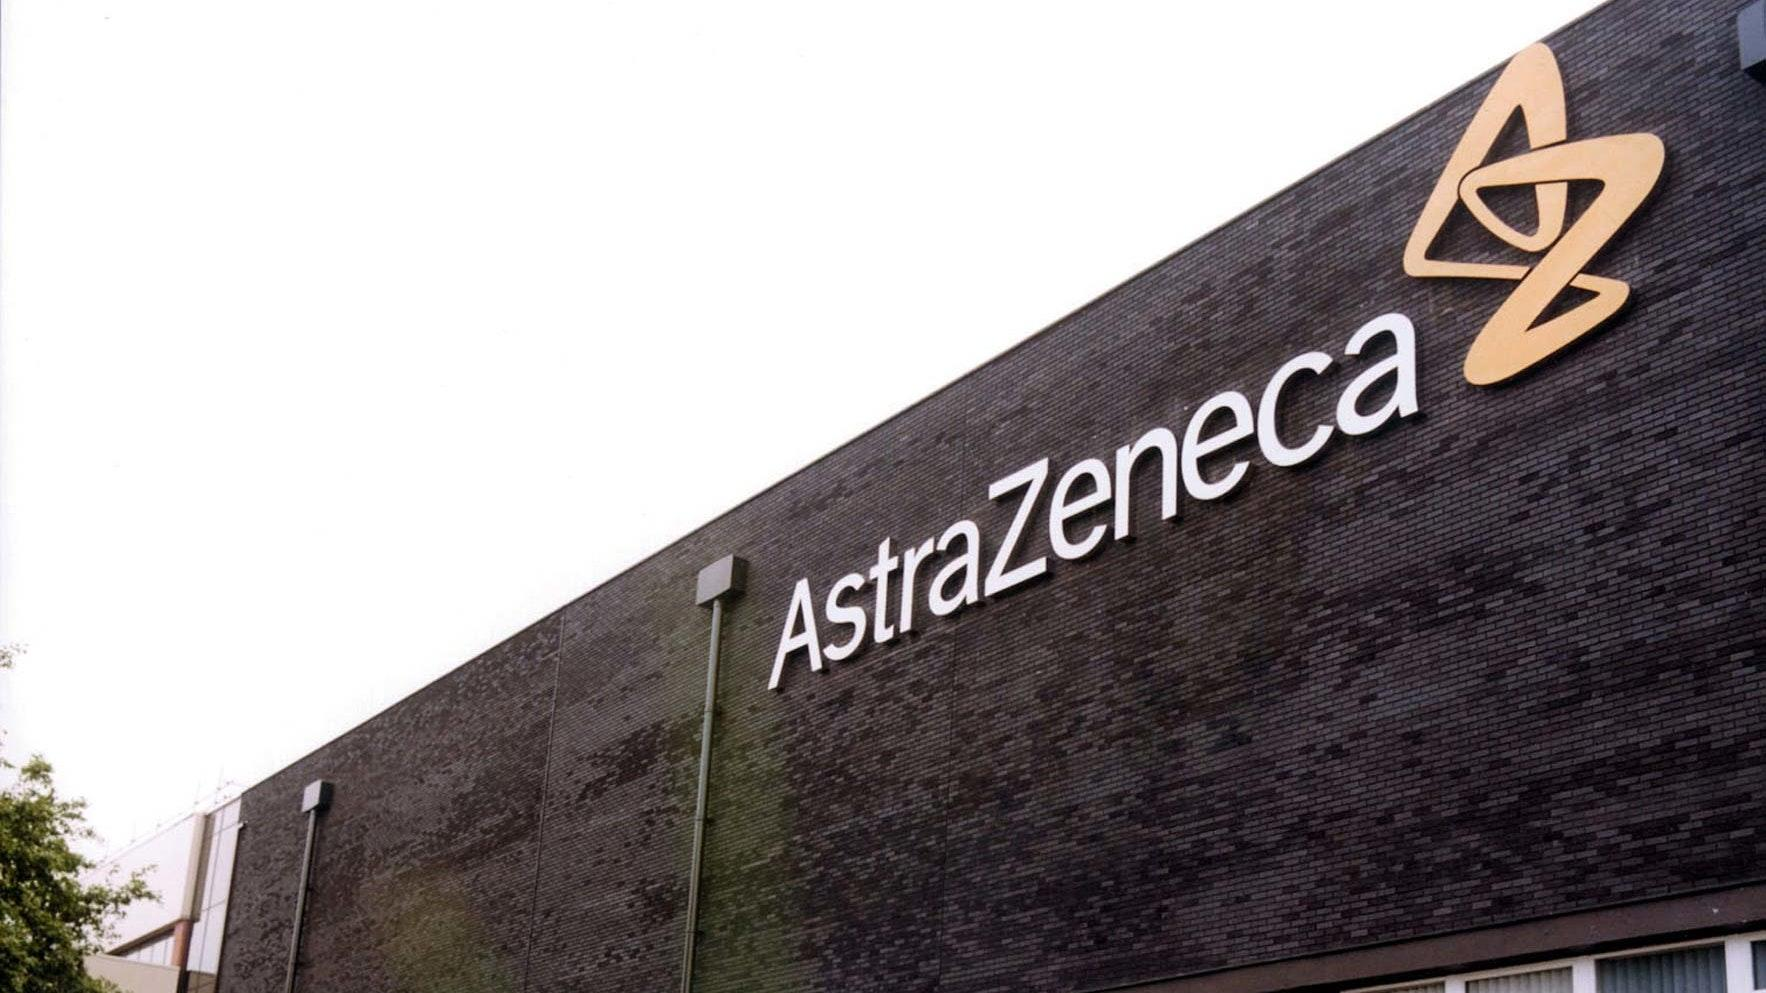 The people behind the Oxford-AstraZeneca vaccine